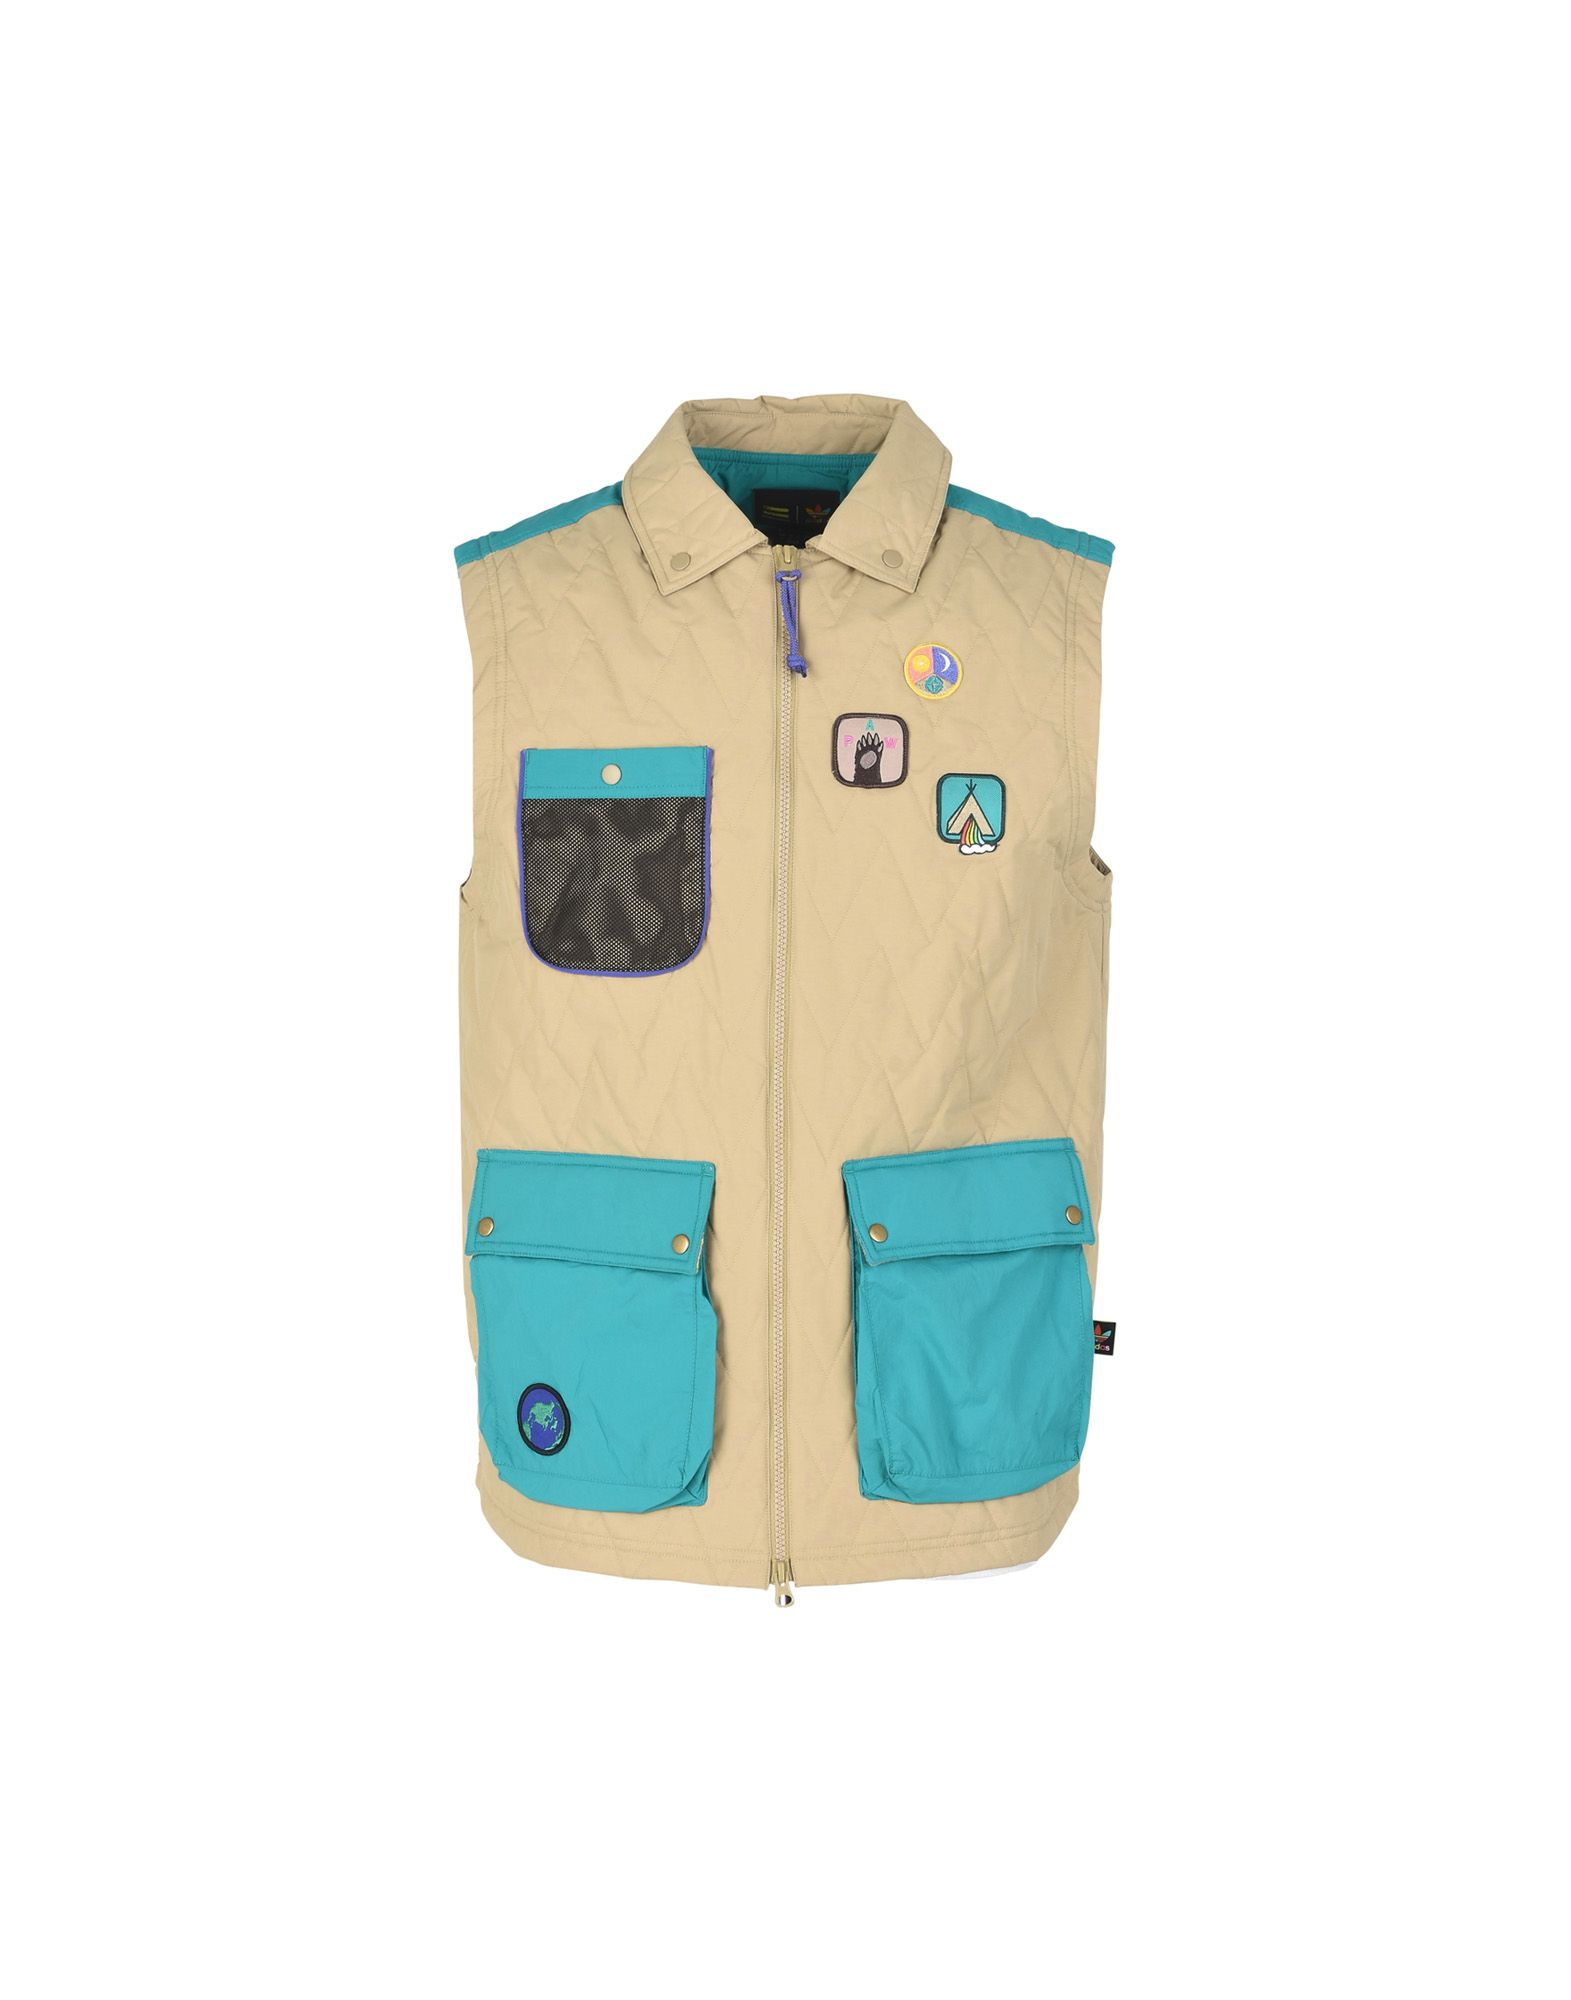 Giubbotto Adidas Originals By Pharrell Williams Hu H Gilet - Uomo - Acquista online su